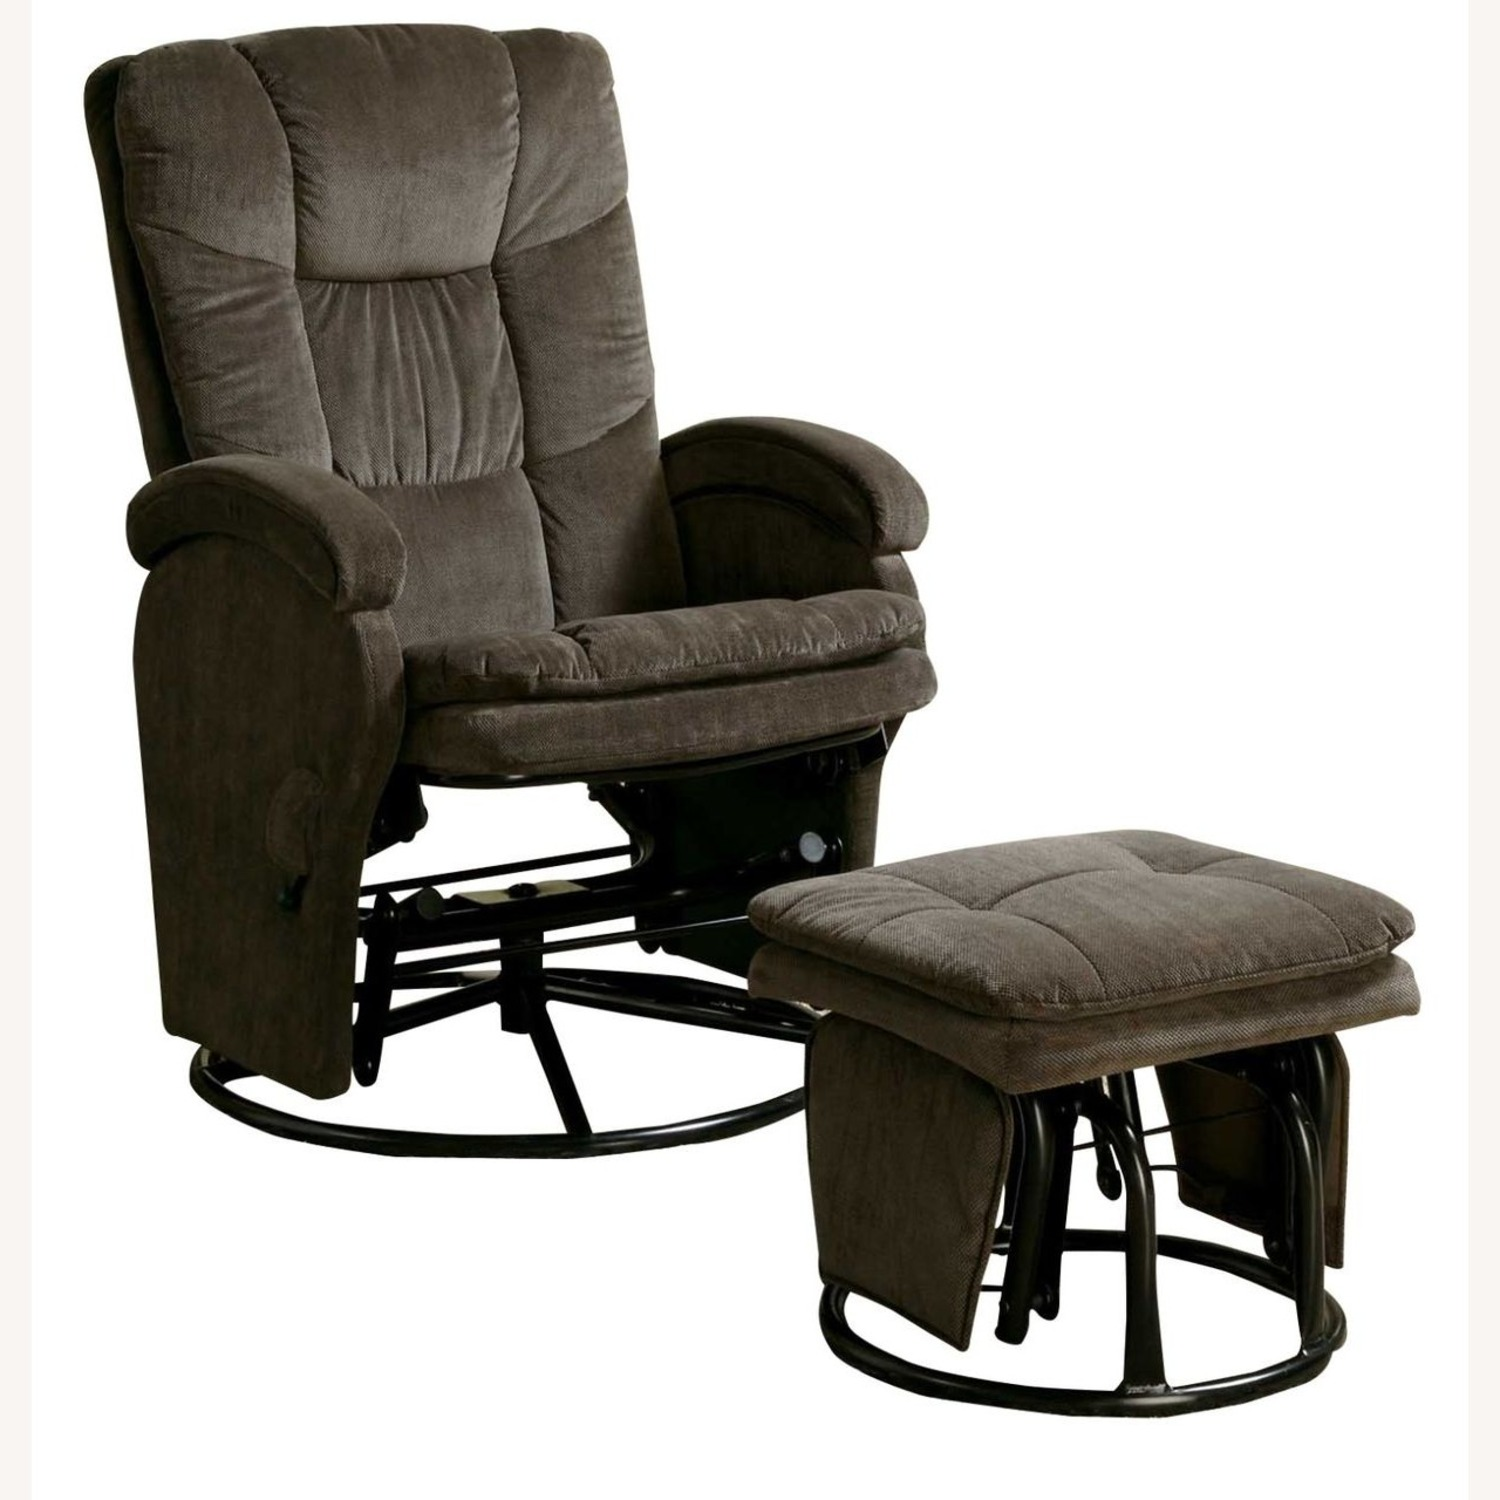 Glider W/ Ottoman In Chocolate Chenille Upholstery - image-0